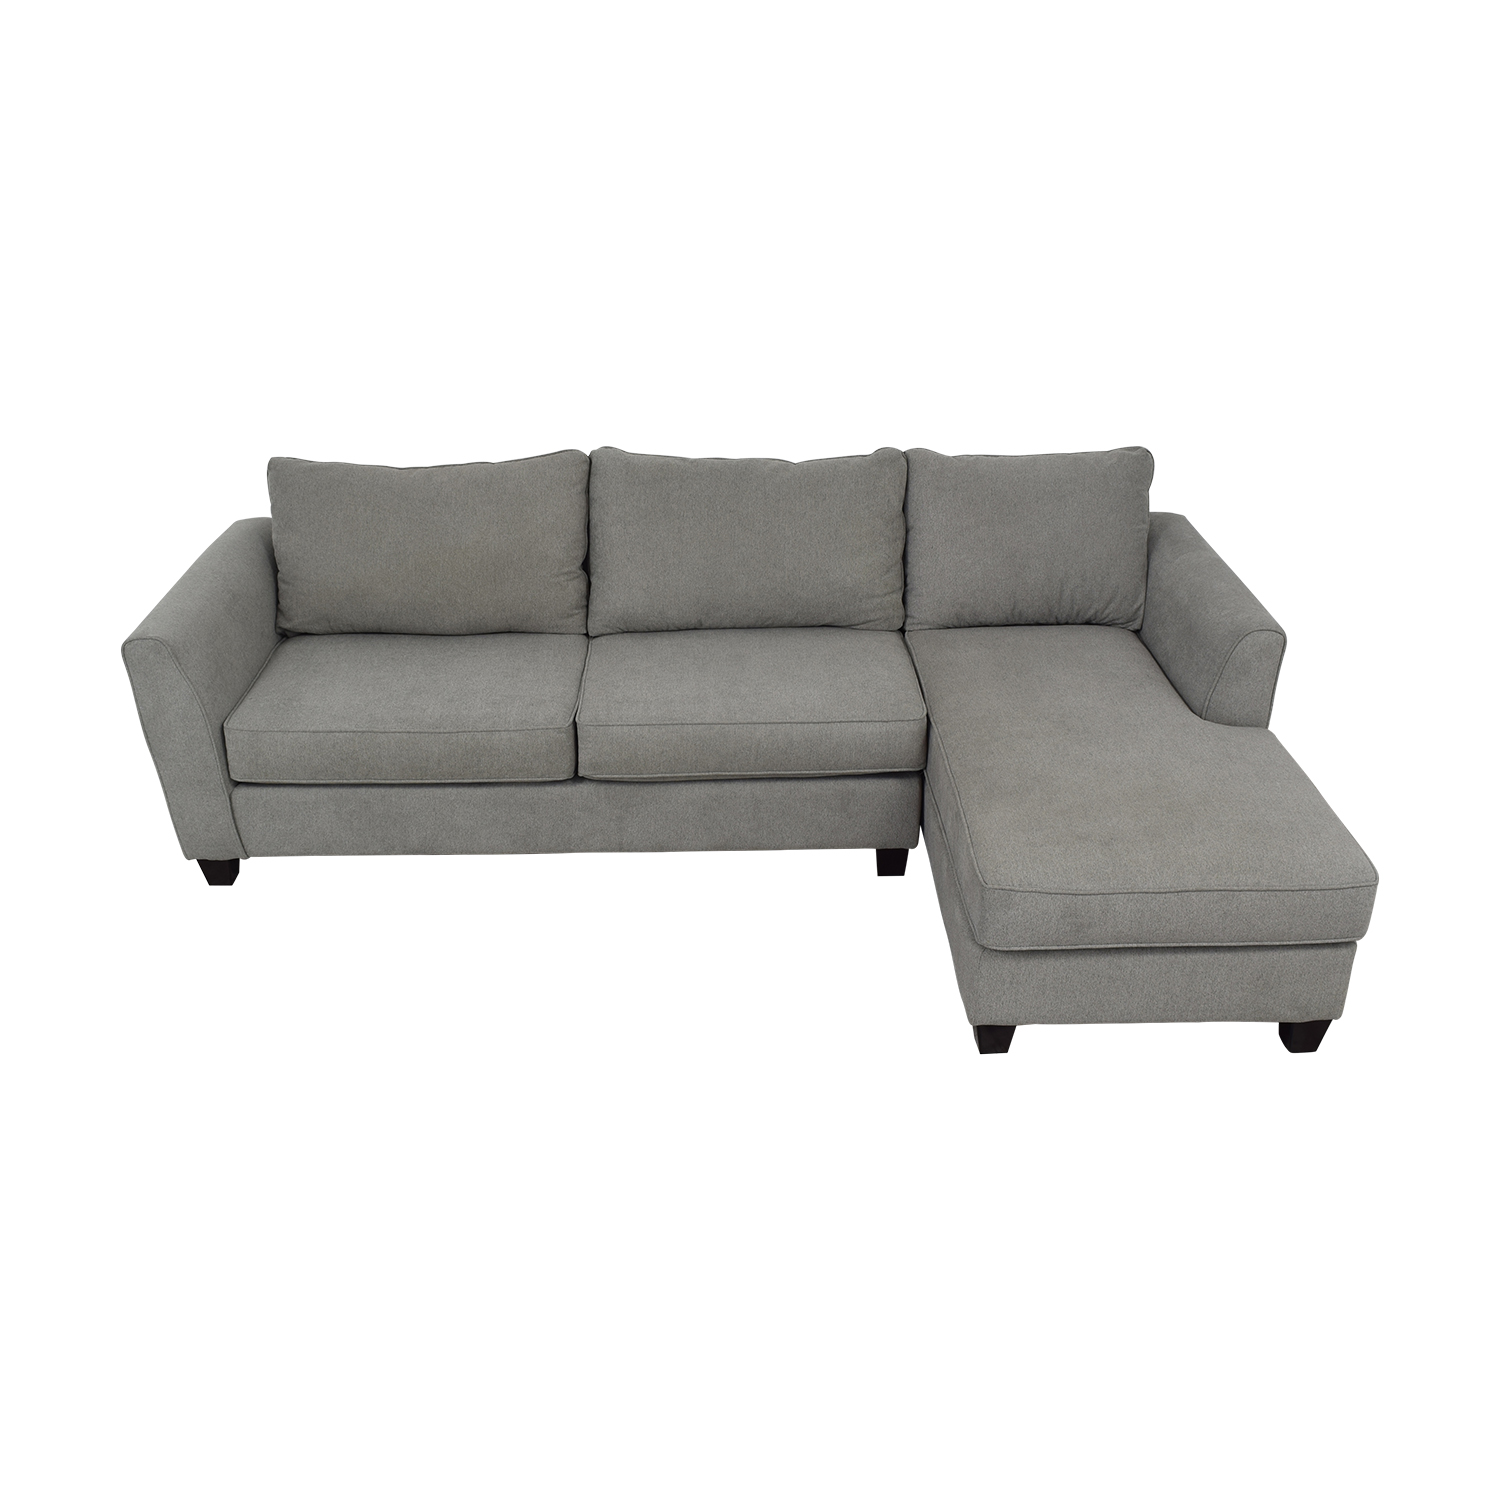 Raymour & Flanigan Raymour & Flanigan Sectional grey